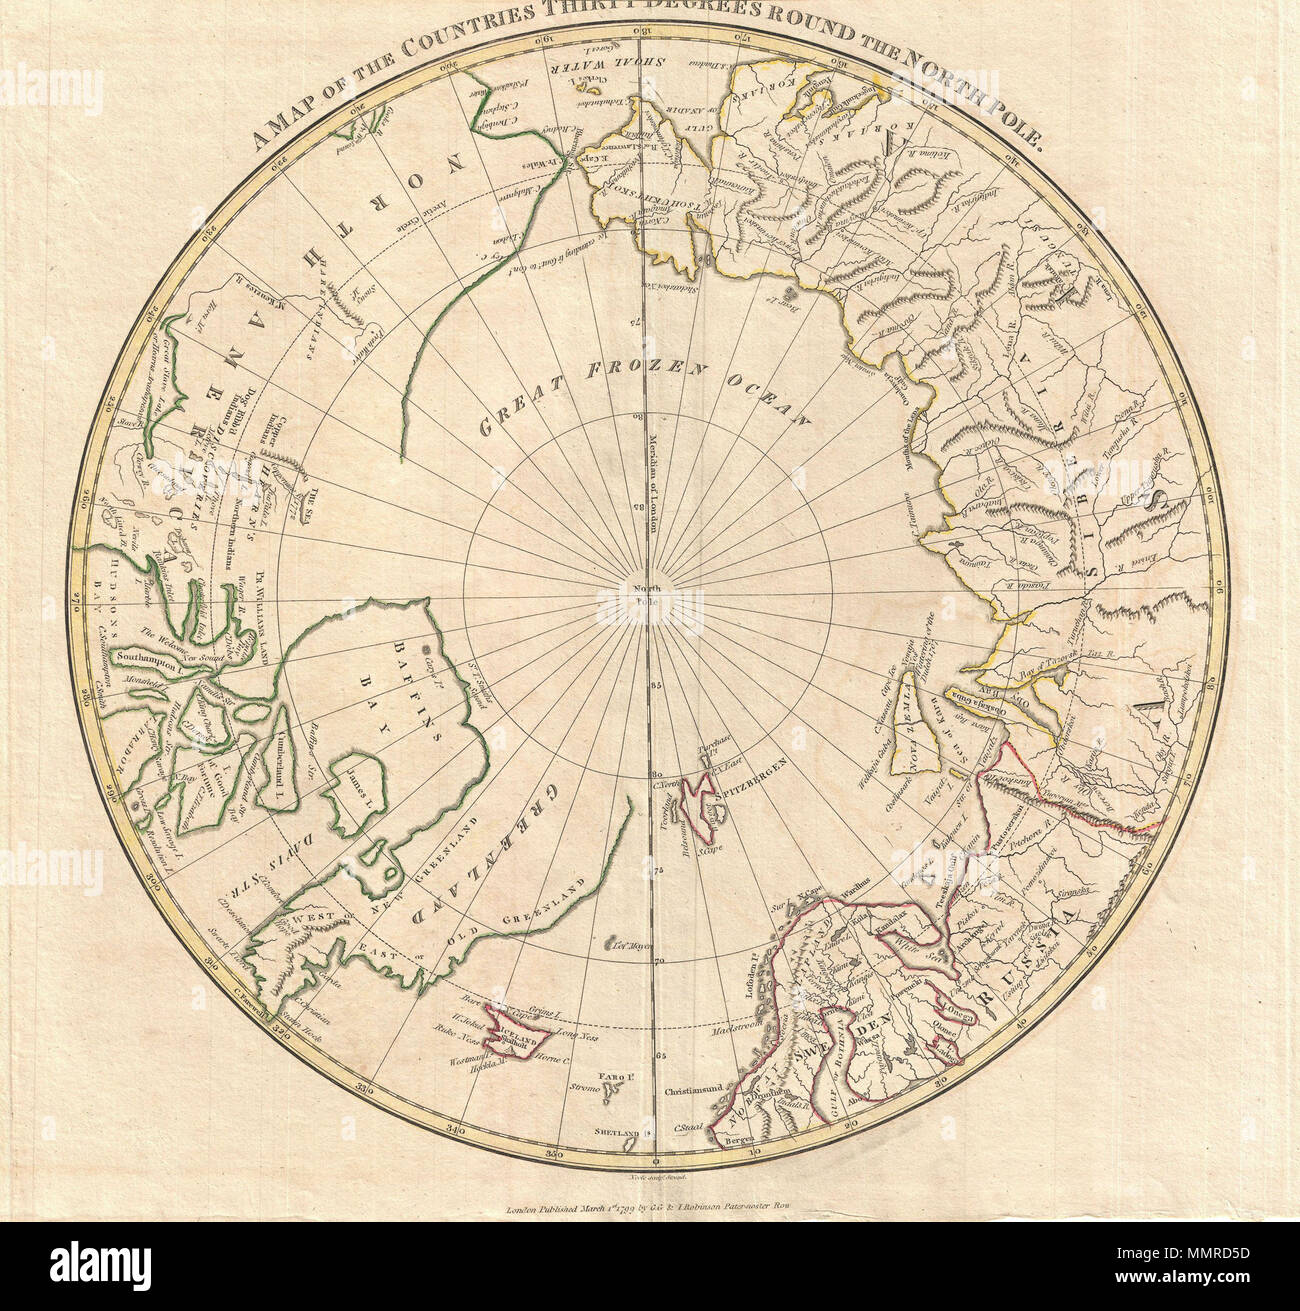 English: A fine 1799 map of the northern polar regions by ... on clear map of lithuania, clear map of indian subcontinent, clear map of papua new guinea, clear map of the middle east, clear map of west virginia, clear map of montana, clear map of denmark, clear map of ukraine, clear map of usa, clear map of ethiopia, clear map of idaho, clear map of madagascar, clear map of connecticut, clear map of belgium, clear map of costa rica, clear map of pennsylvania, clear map europe, clear map of nevada, clear map of trinidad, clear map of armenia,